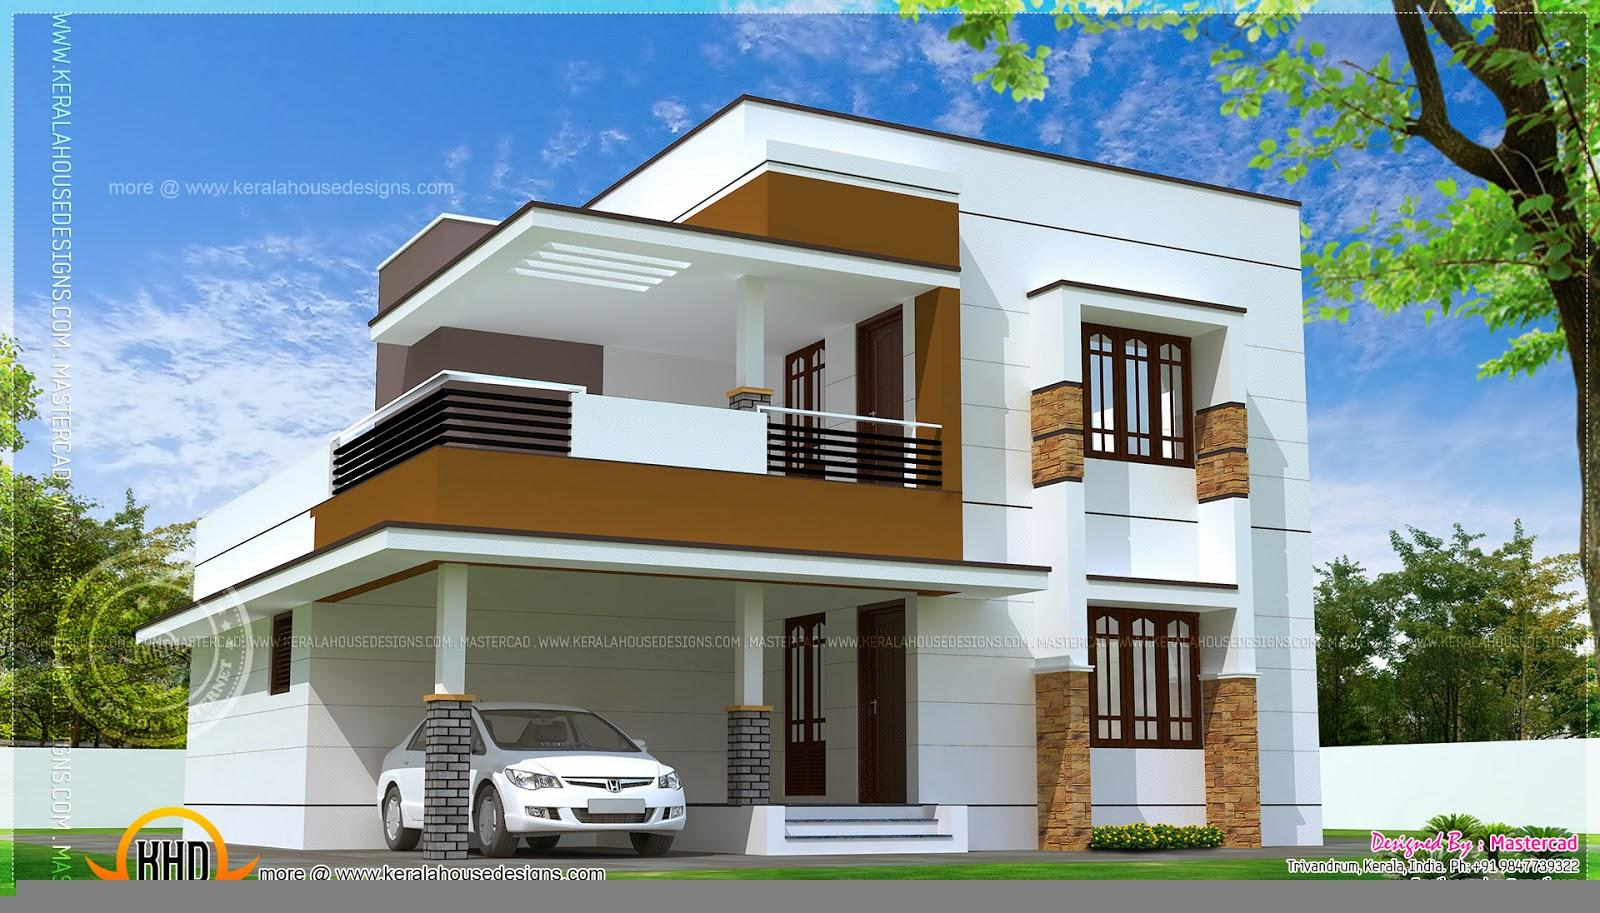 Ghar k liye achhi design gharexpert Naksha for house construction